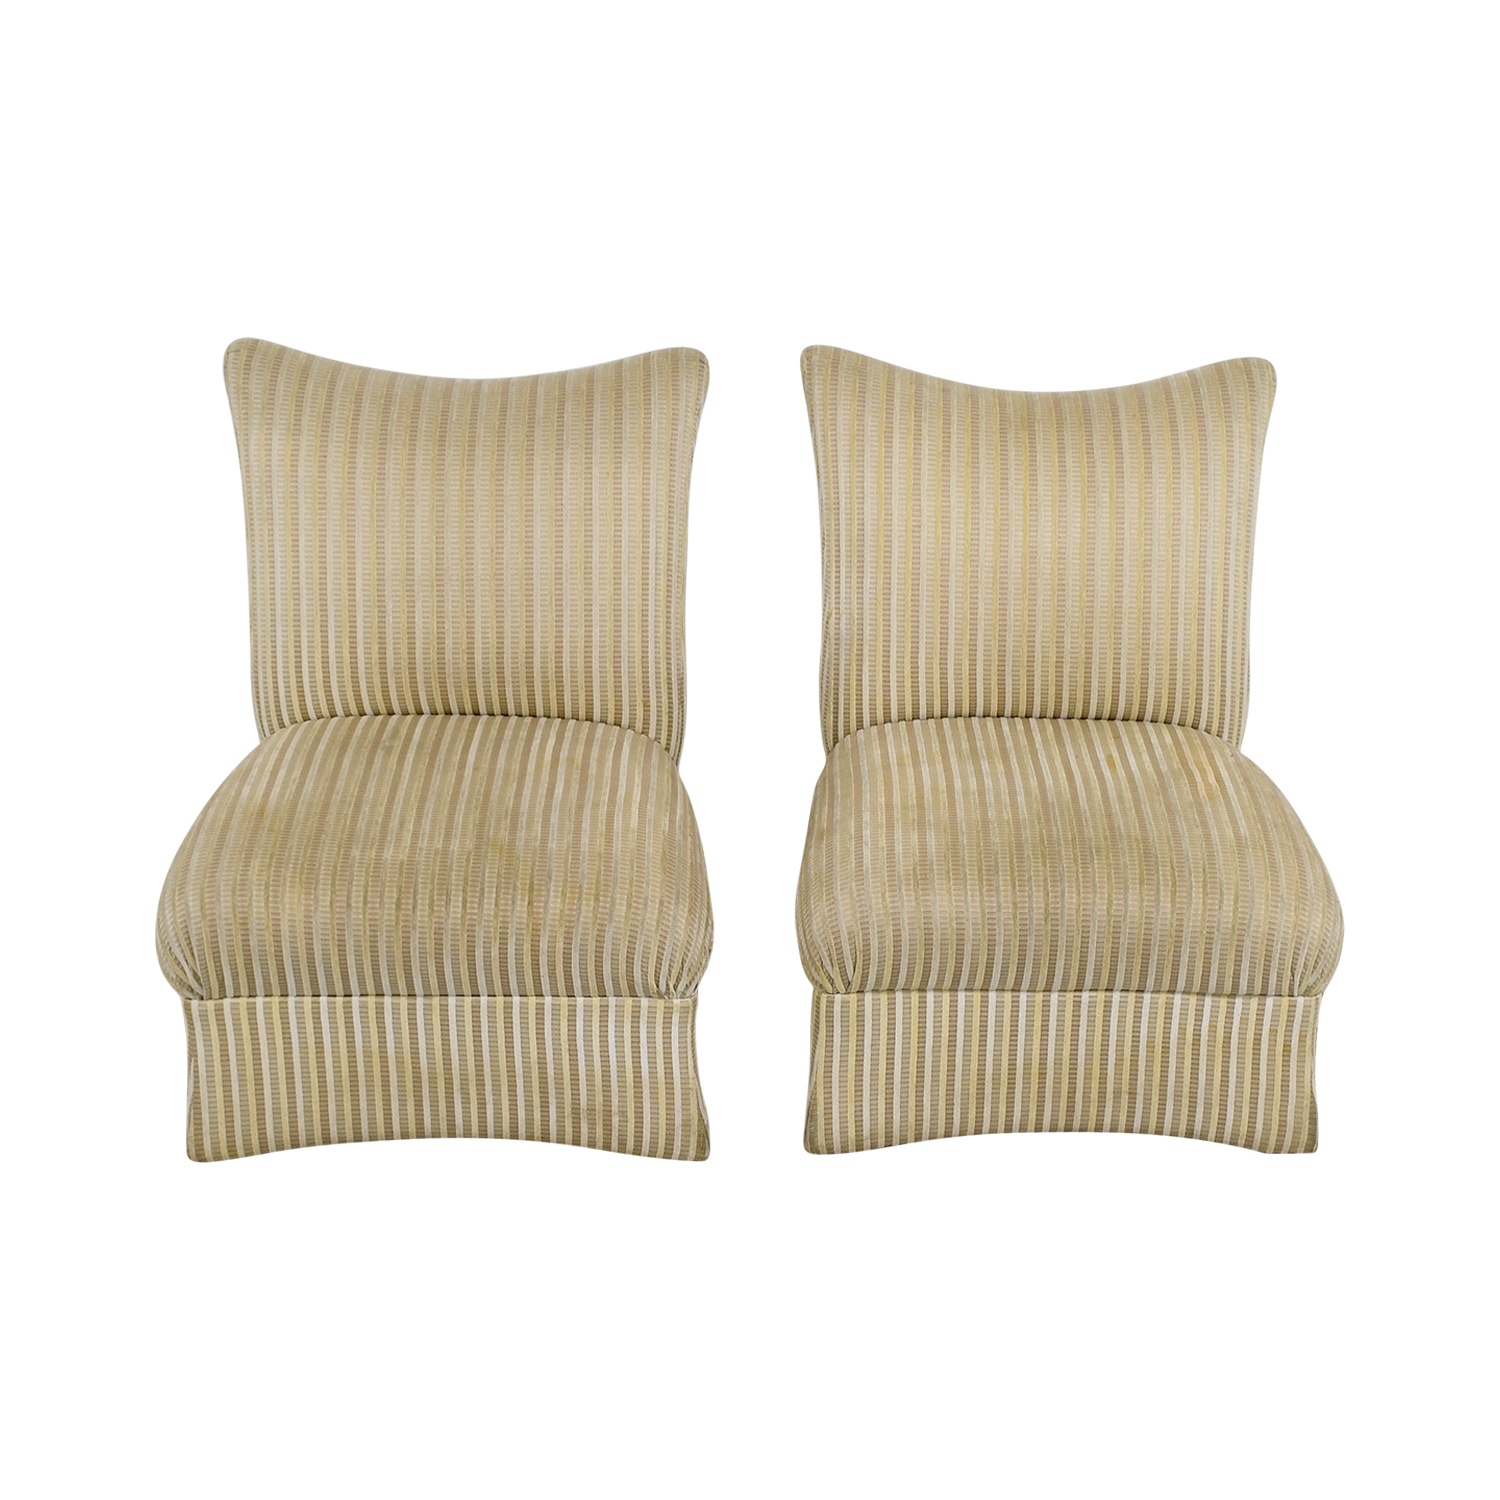 Ethan Allen Striped Accent Chairs